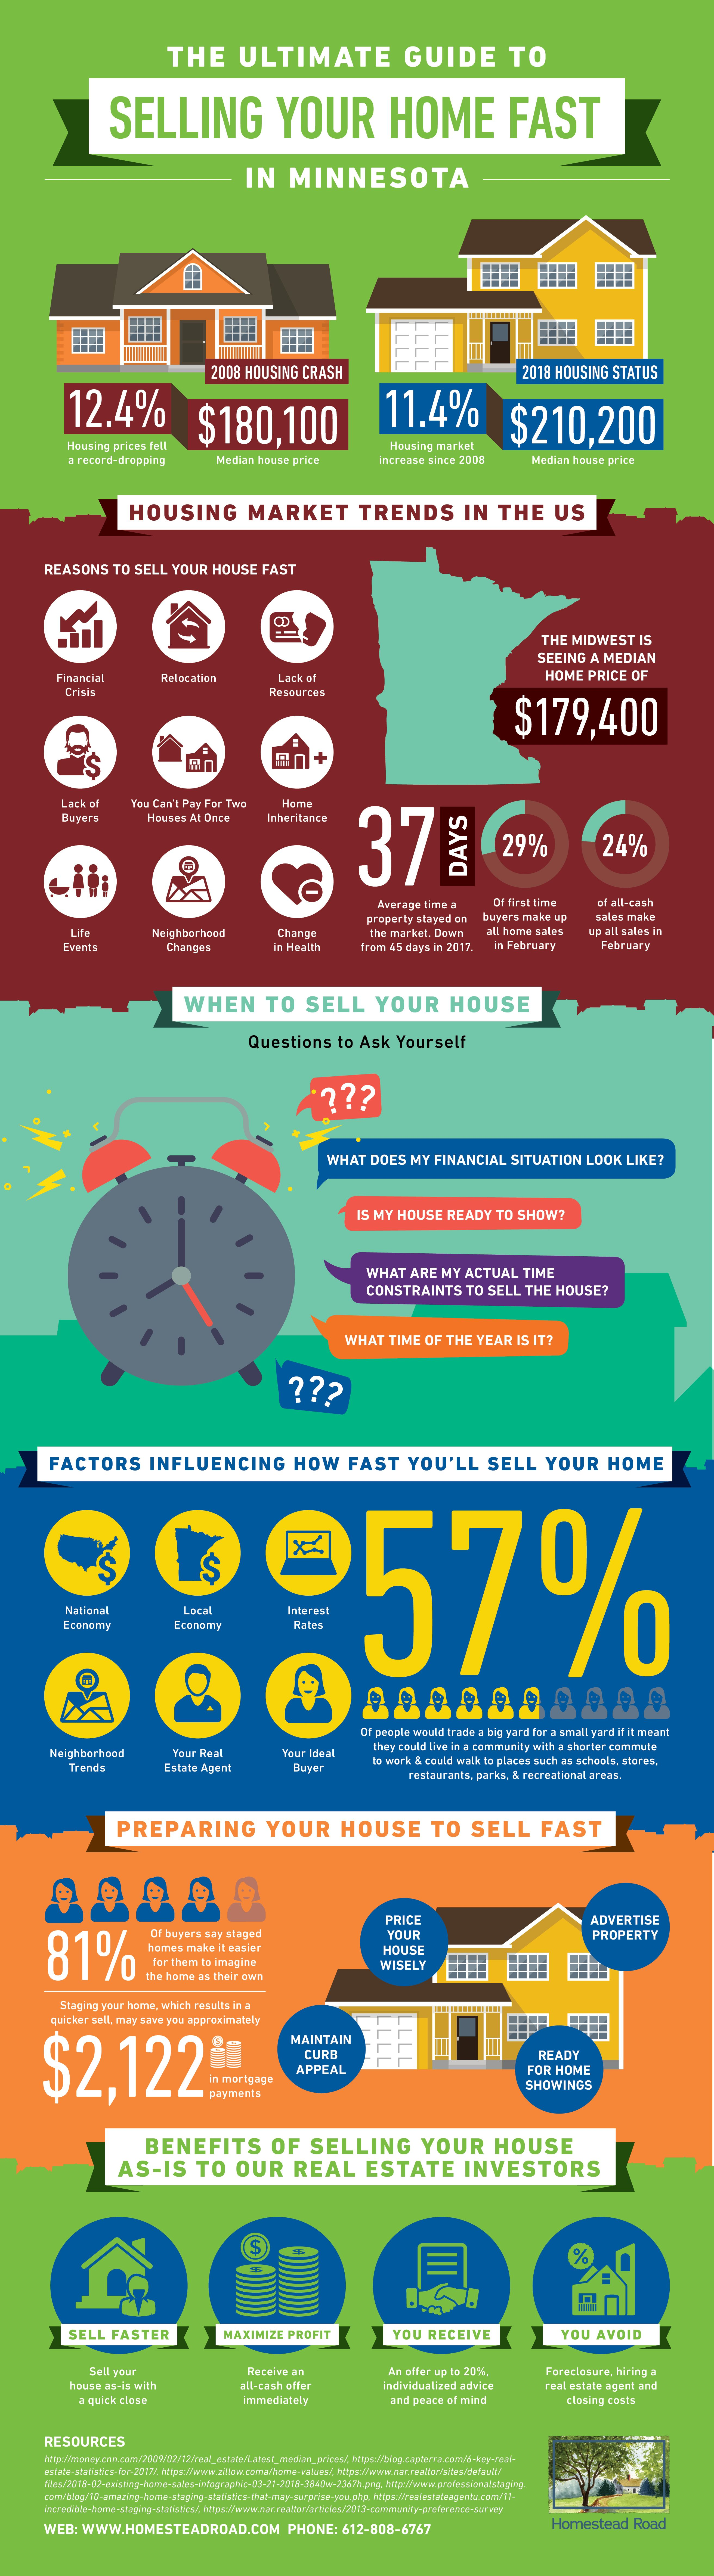 infographic-ultimate-guide-sell-mn-house-quickly